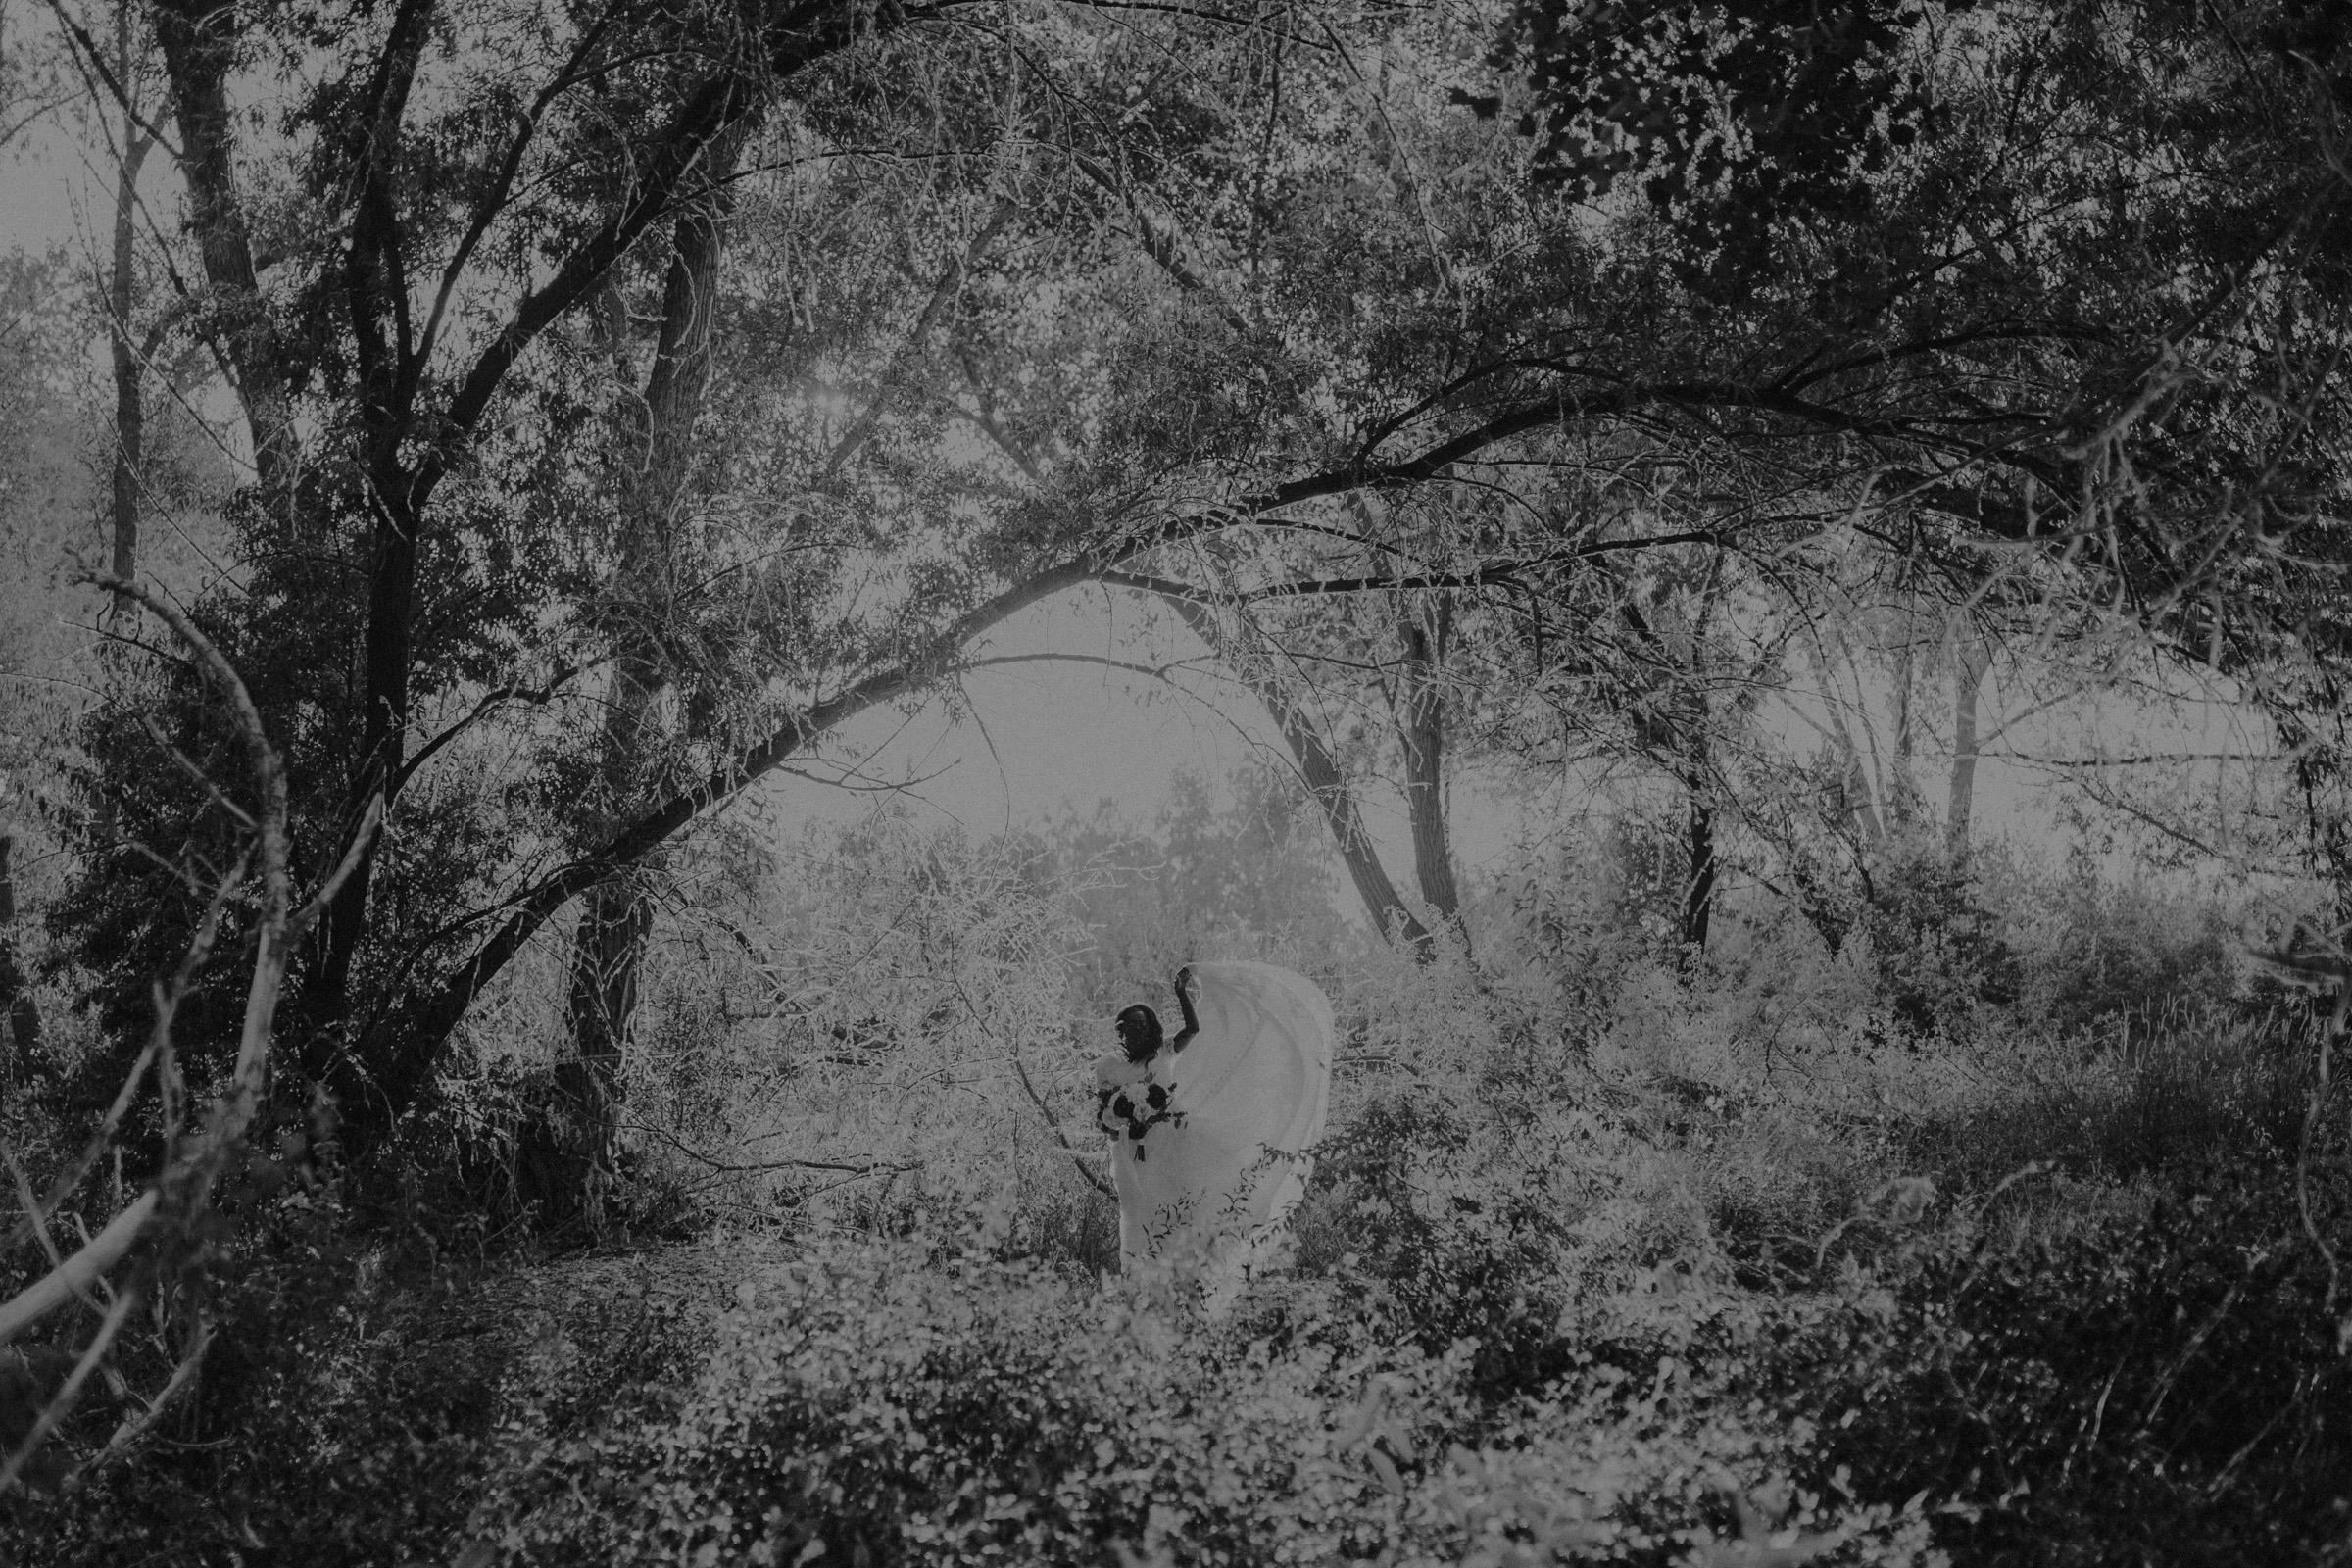 bride standing in grassy field with lots of trees